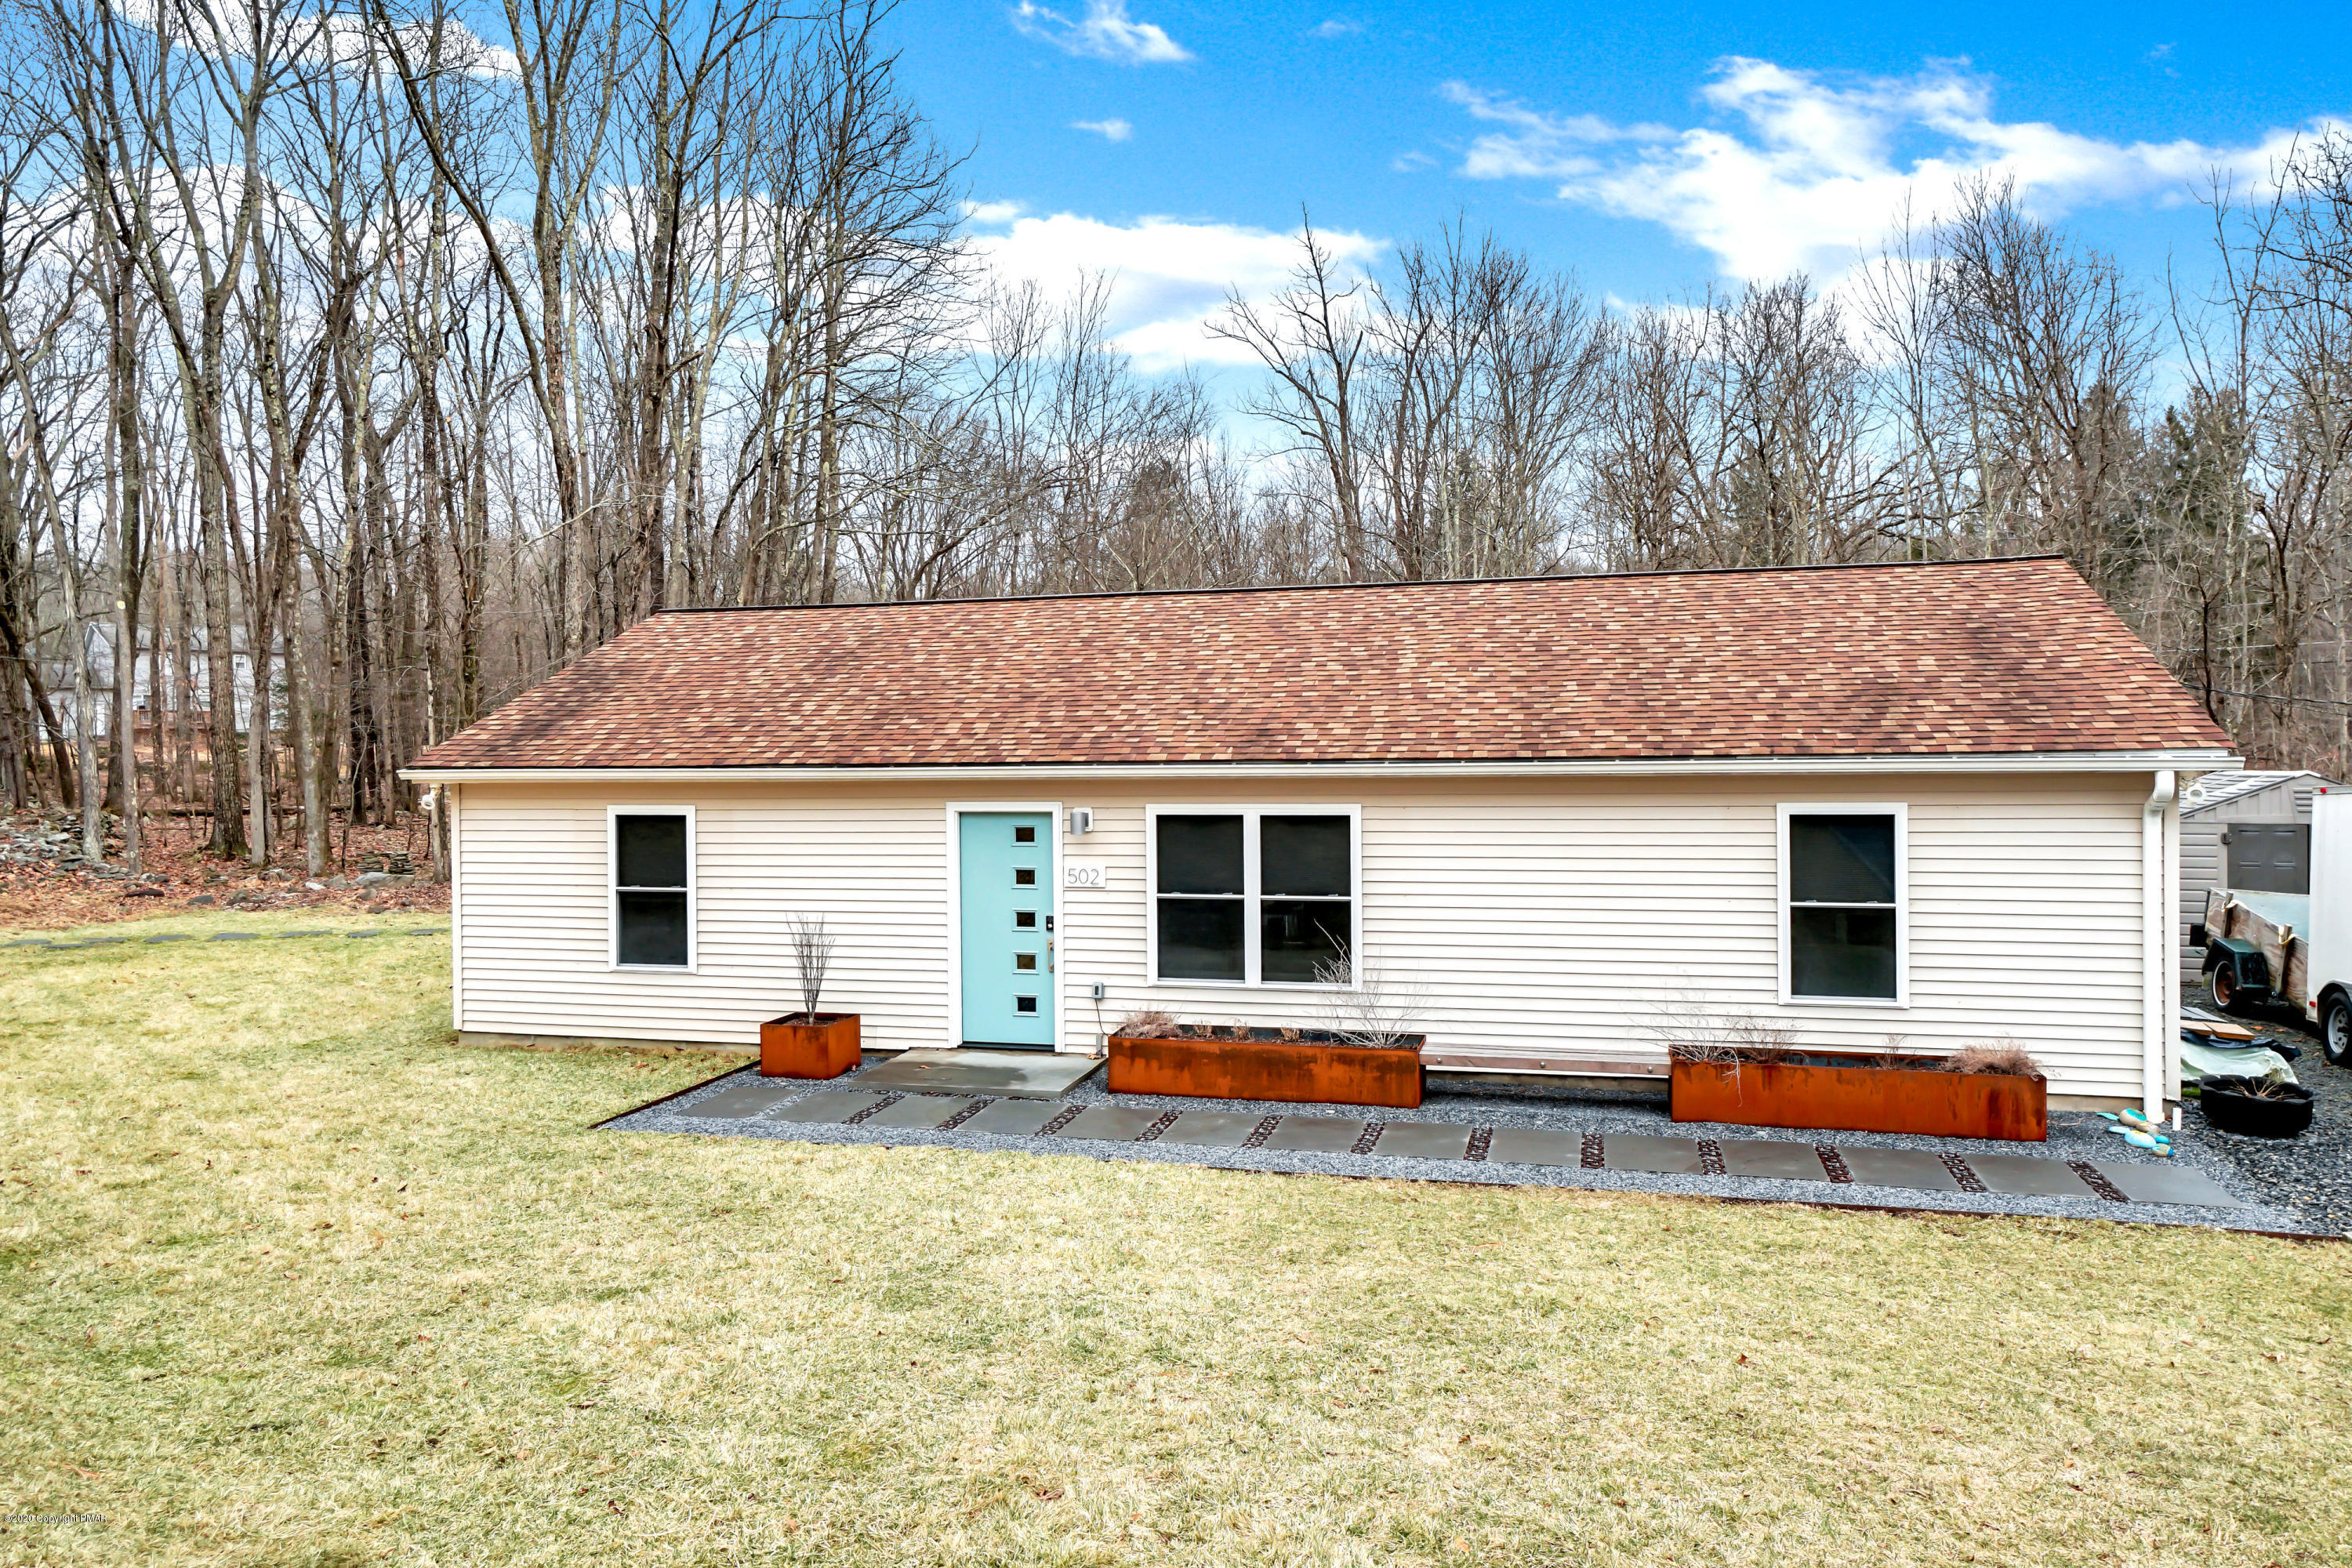 502 San Marco Ct, Henryville, PA 18332